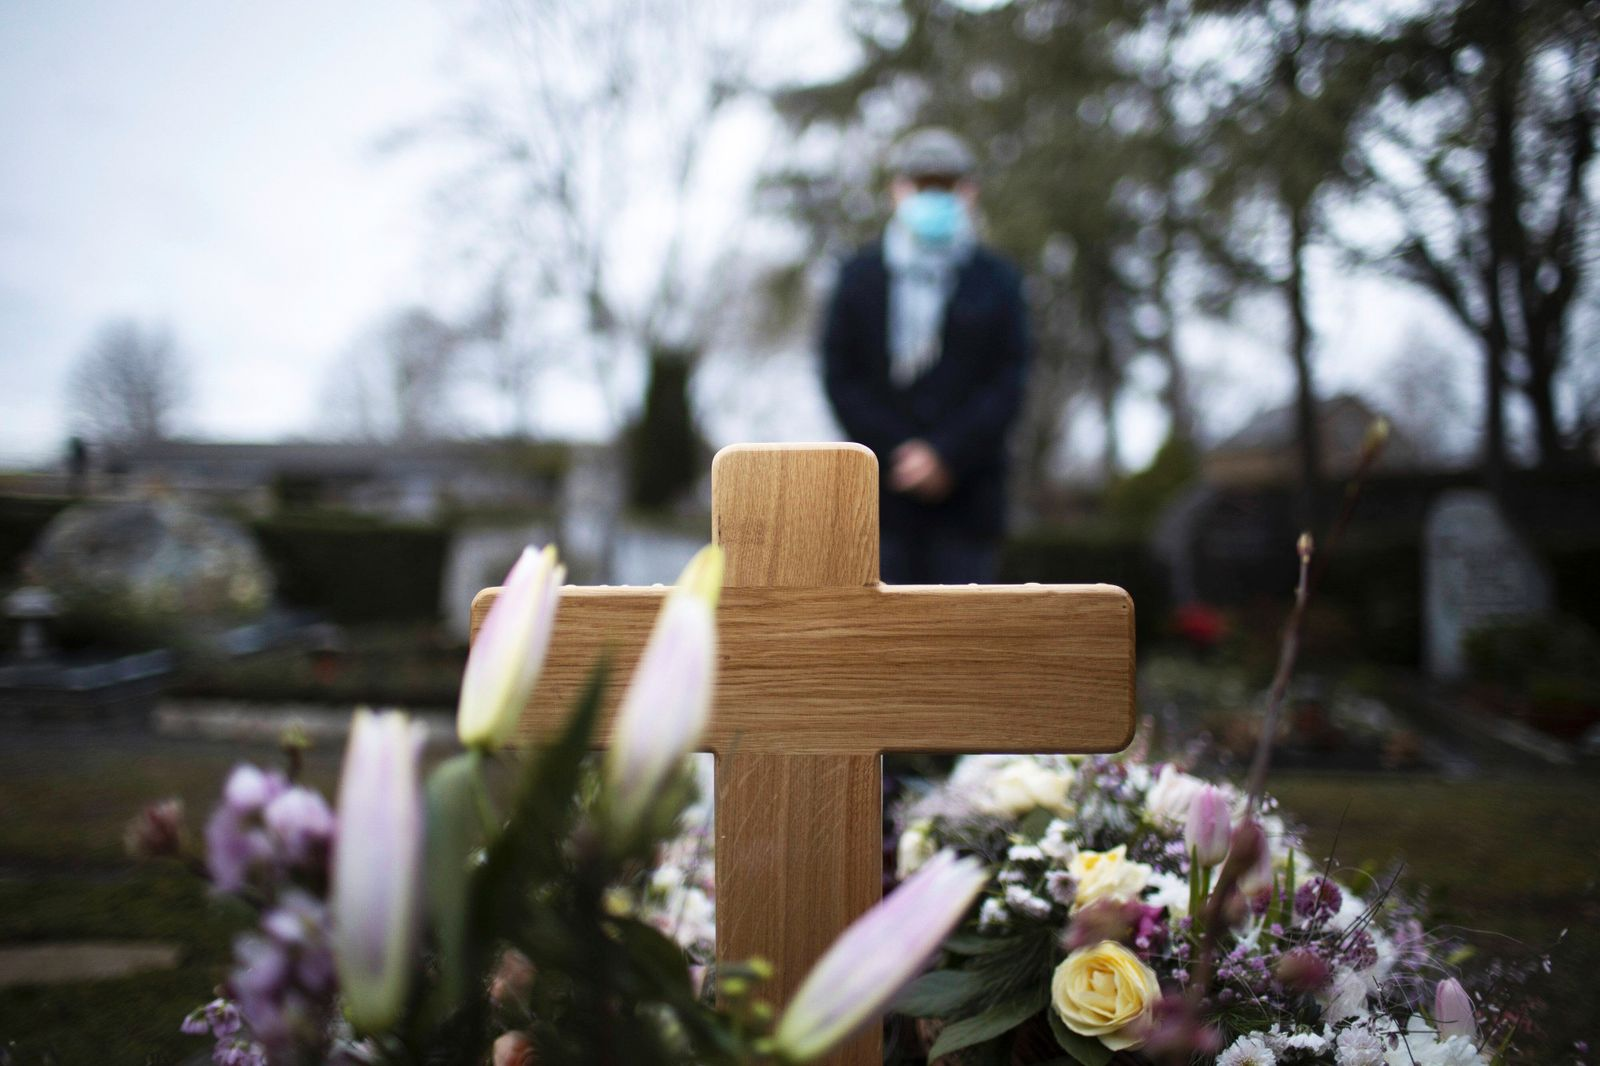 Bonn, Germany - January 21: In this photo illustration Man with a mouth-nose mask stands in front of a grave on January